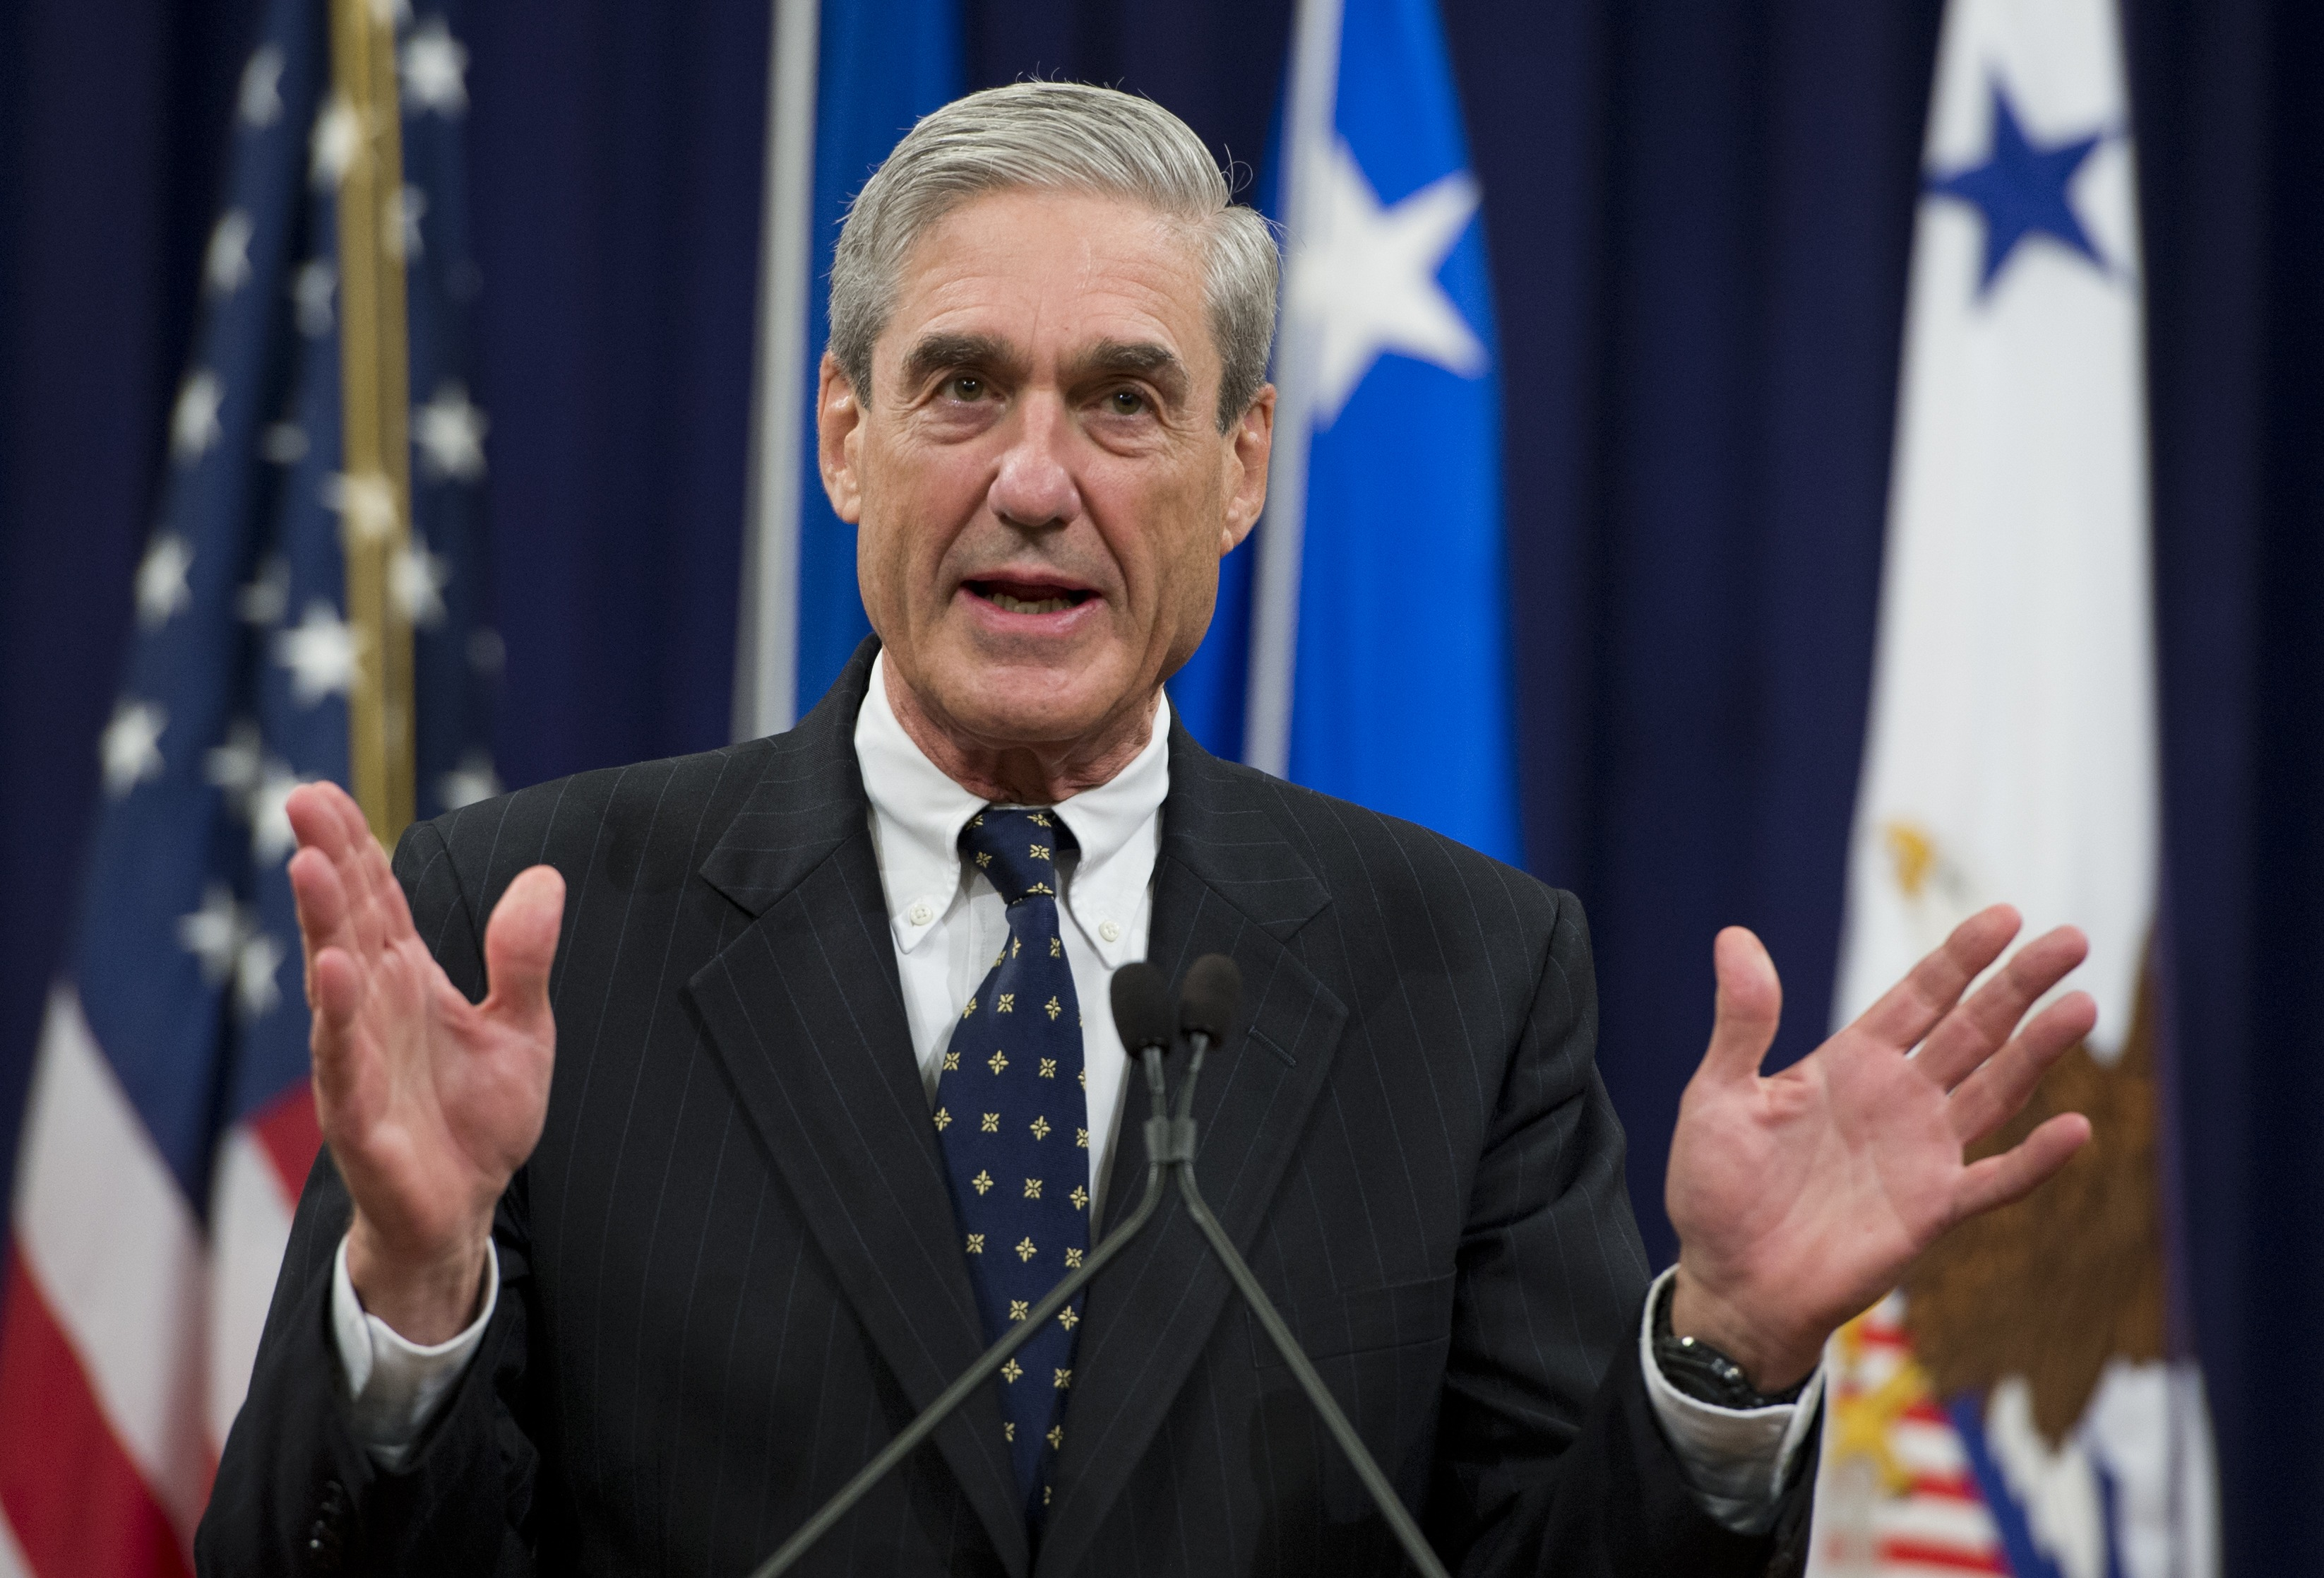 Federal Bureau of Investigation (FBI) Director Robert Mueller speaks during a farewell ceremony in Mueller's honor at the Department of Justice on August 1, 2013. Mueller is retiring from the FBI after 12-years as Director. (Photo: SAUL LOEB/AFP/Getty Images)